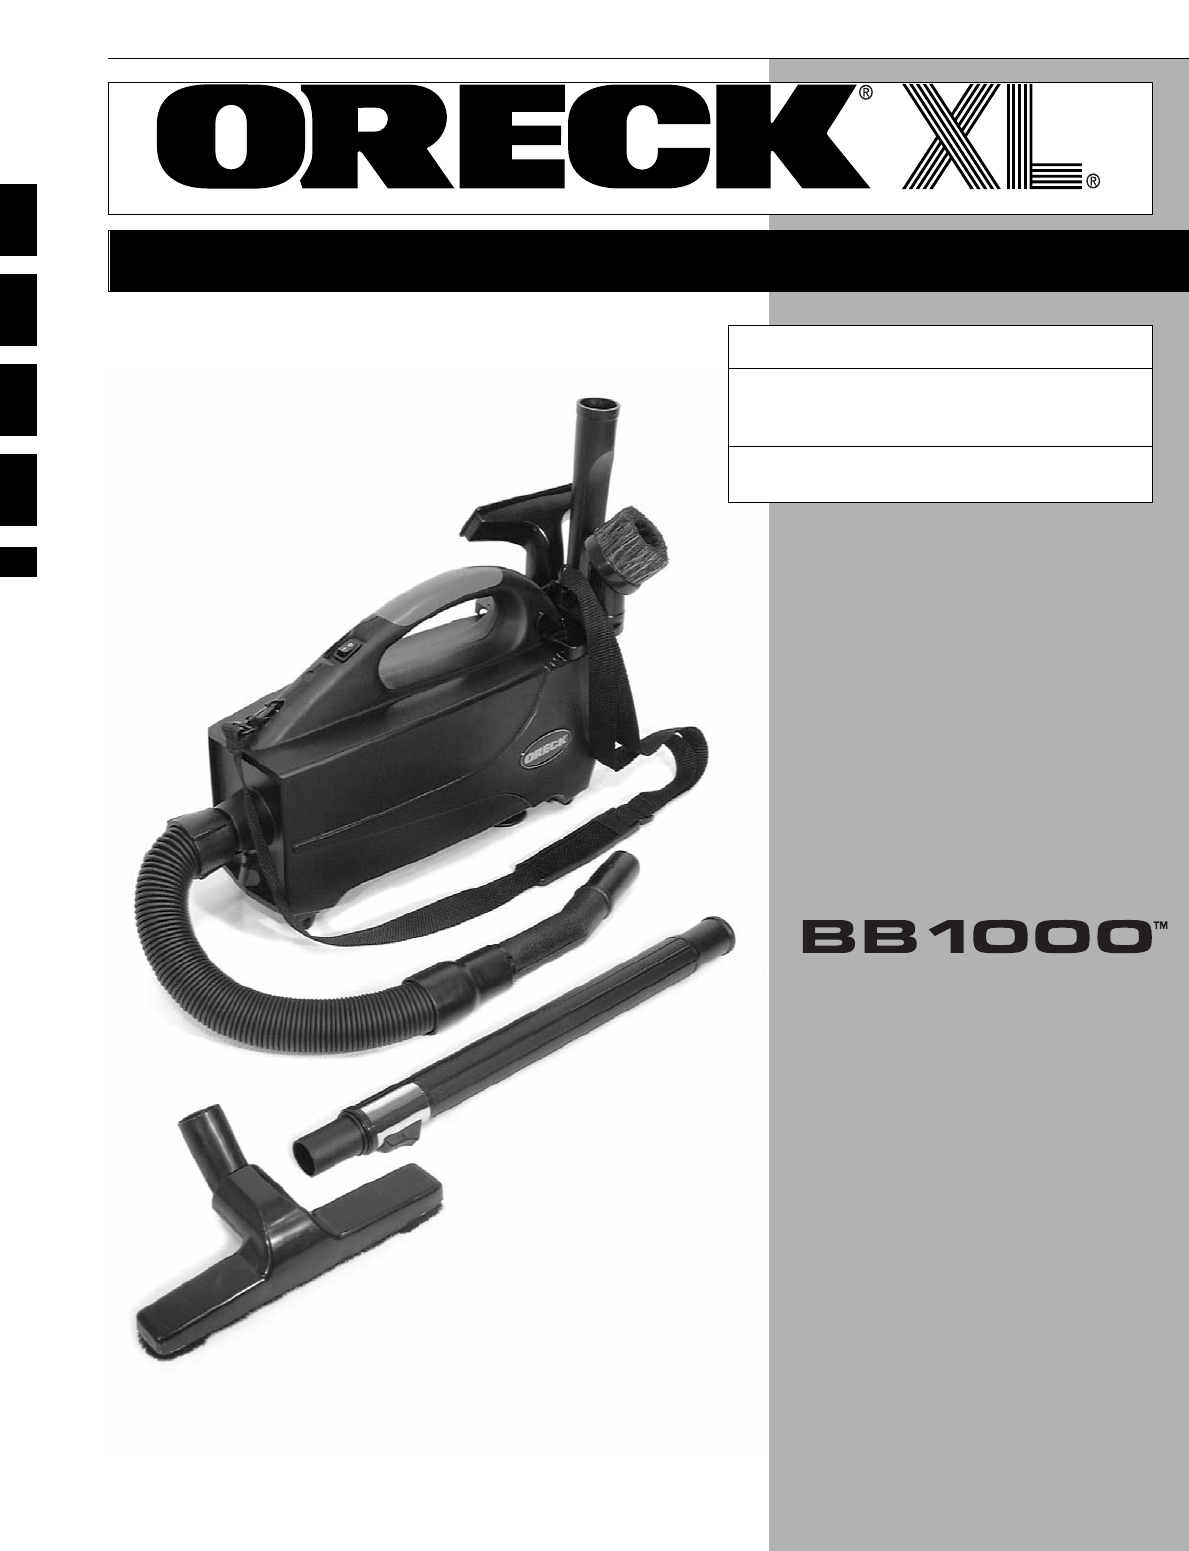 Oreck Vacuum Cleaner BB1000 User Guide